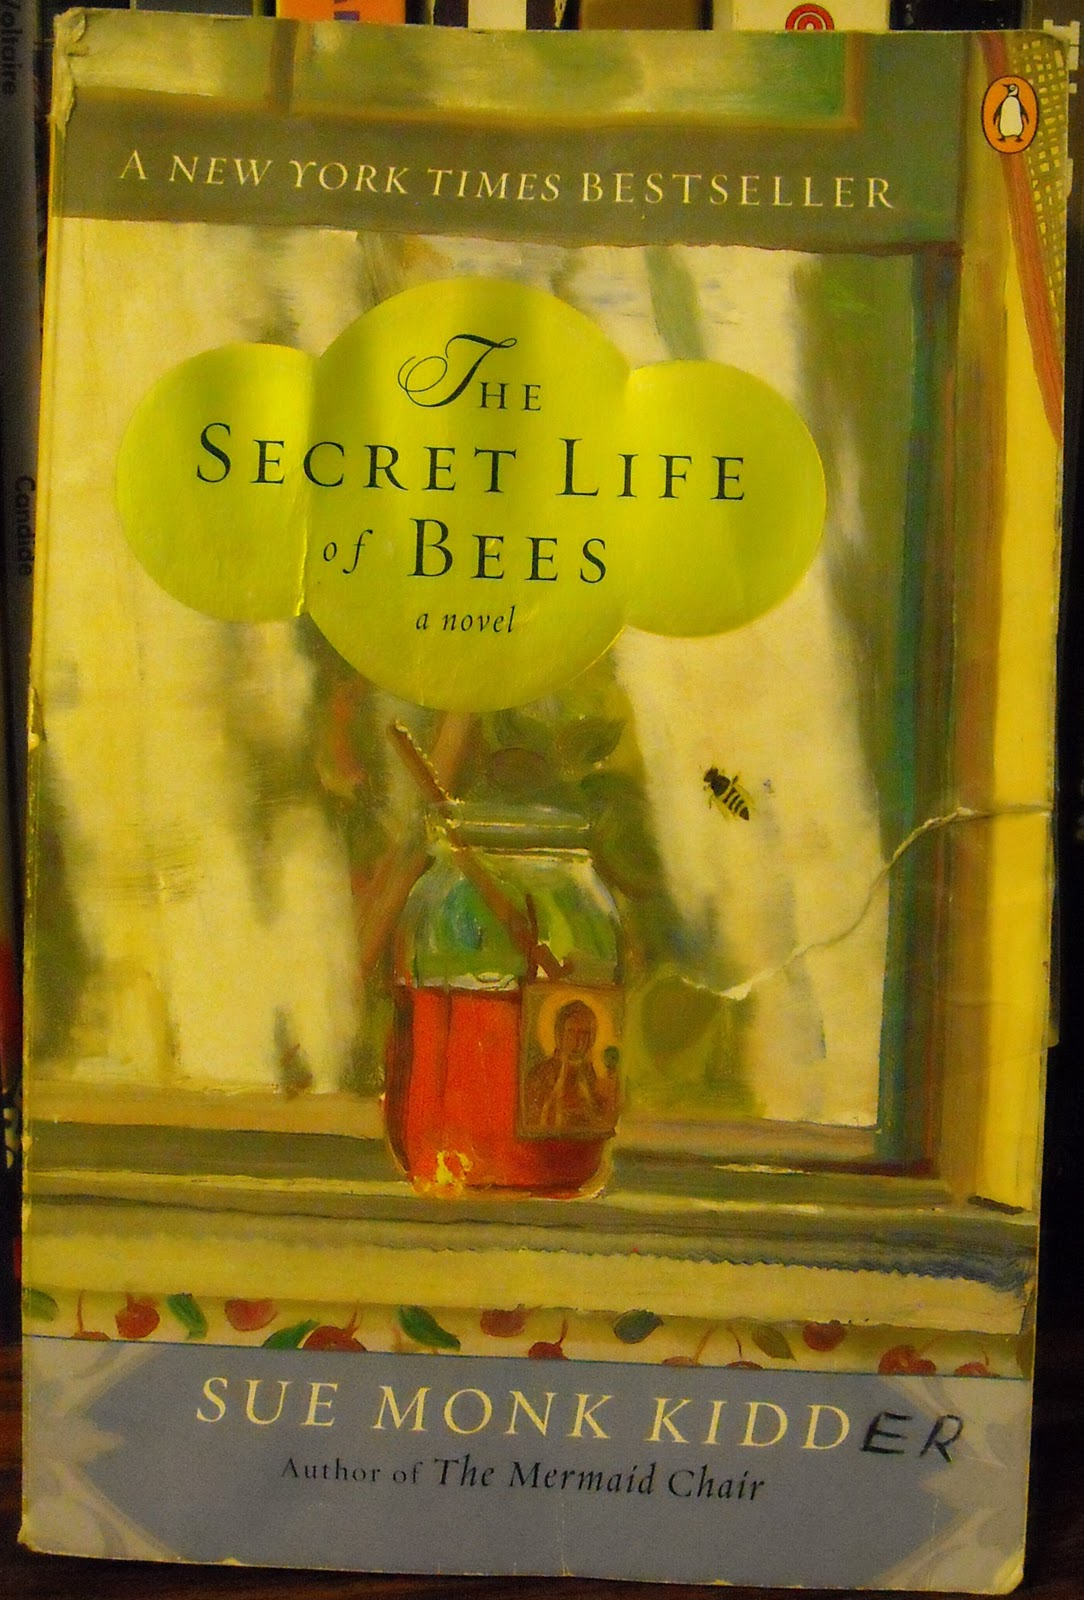 an analysis of the book the secret life of bees